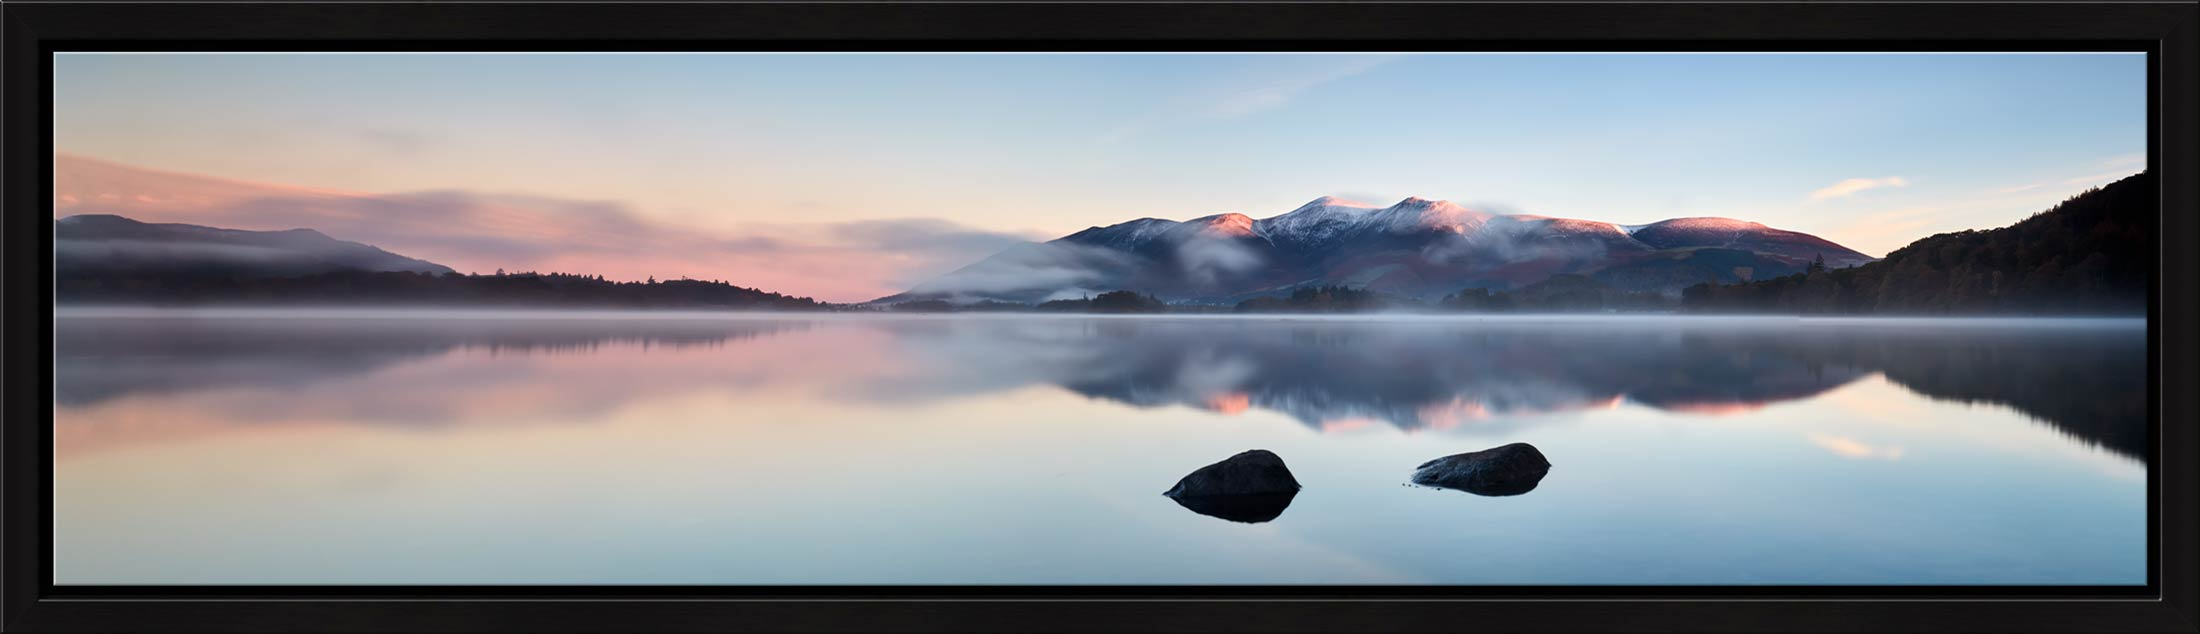 A New Day Dawns at Derwent Water - Modern Print